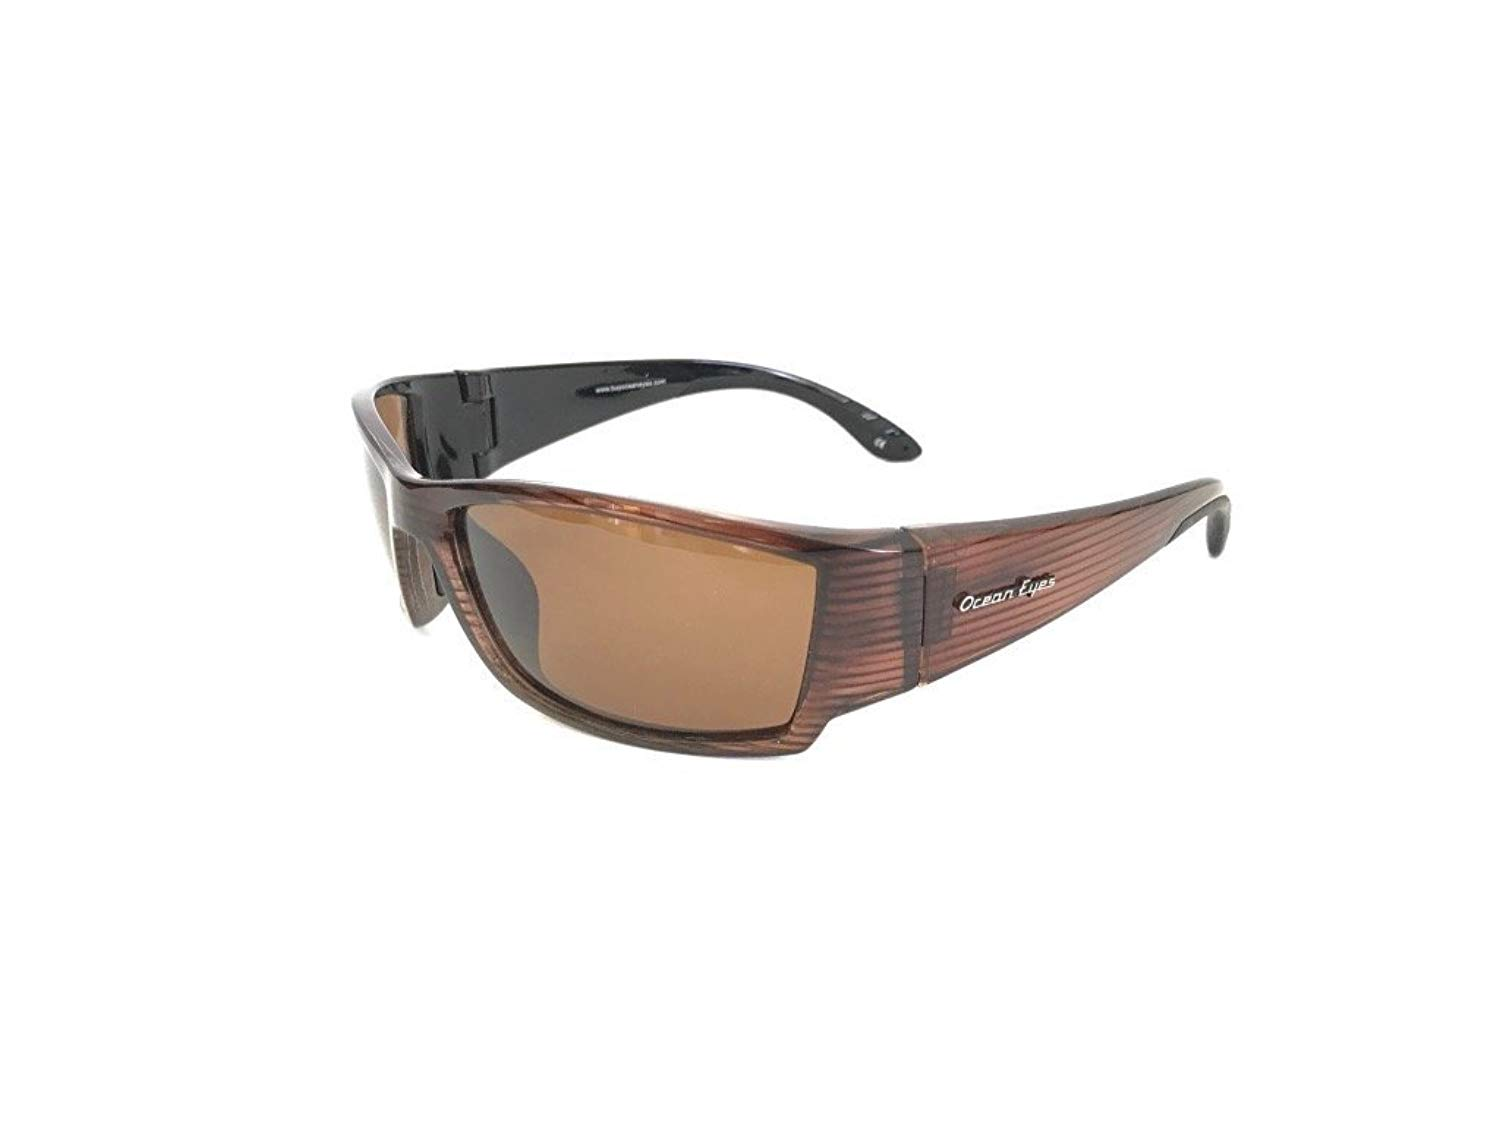 cc2d5f4e2cf Get Quotations · Ocean Eyes Fish On Polarized Sunglasses - Brown Striped